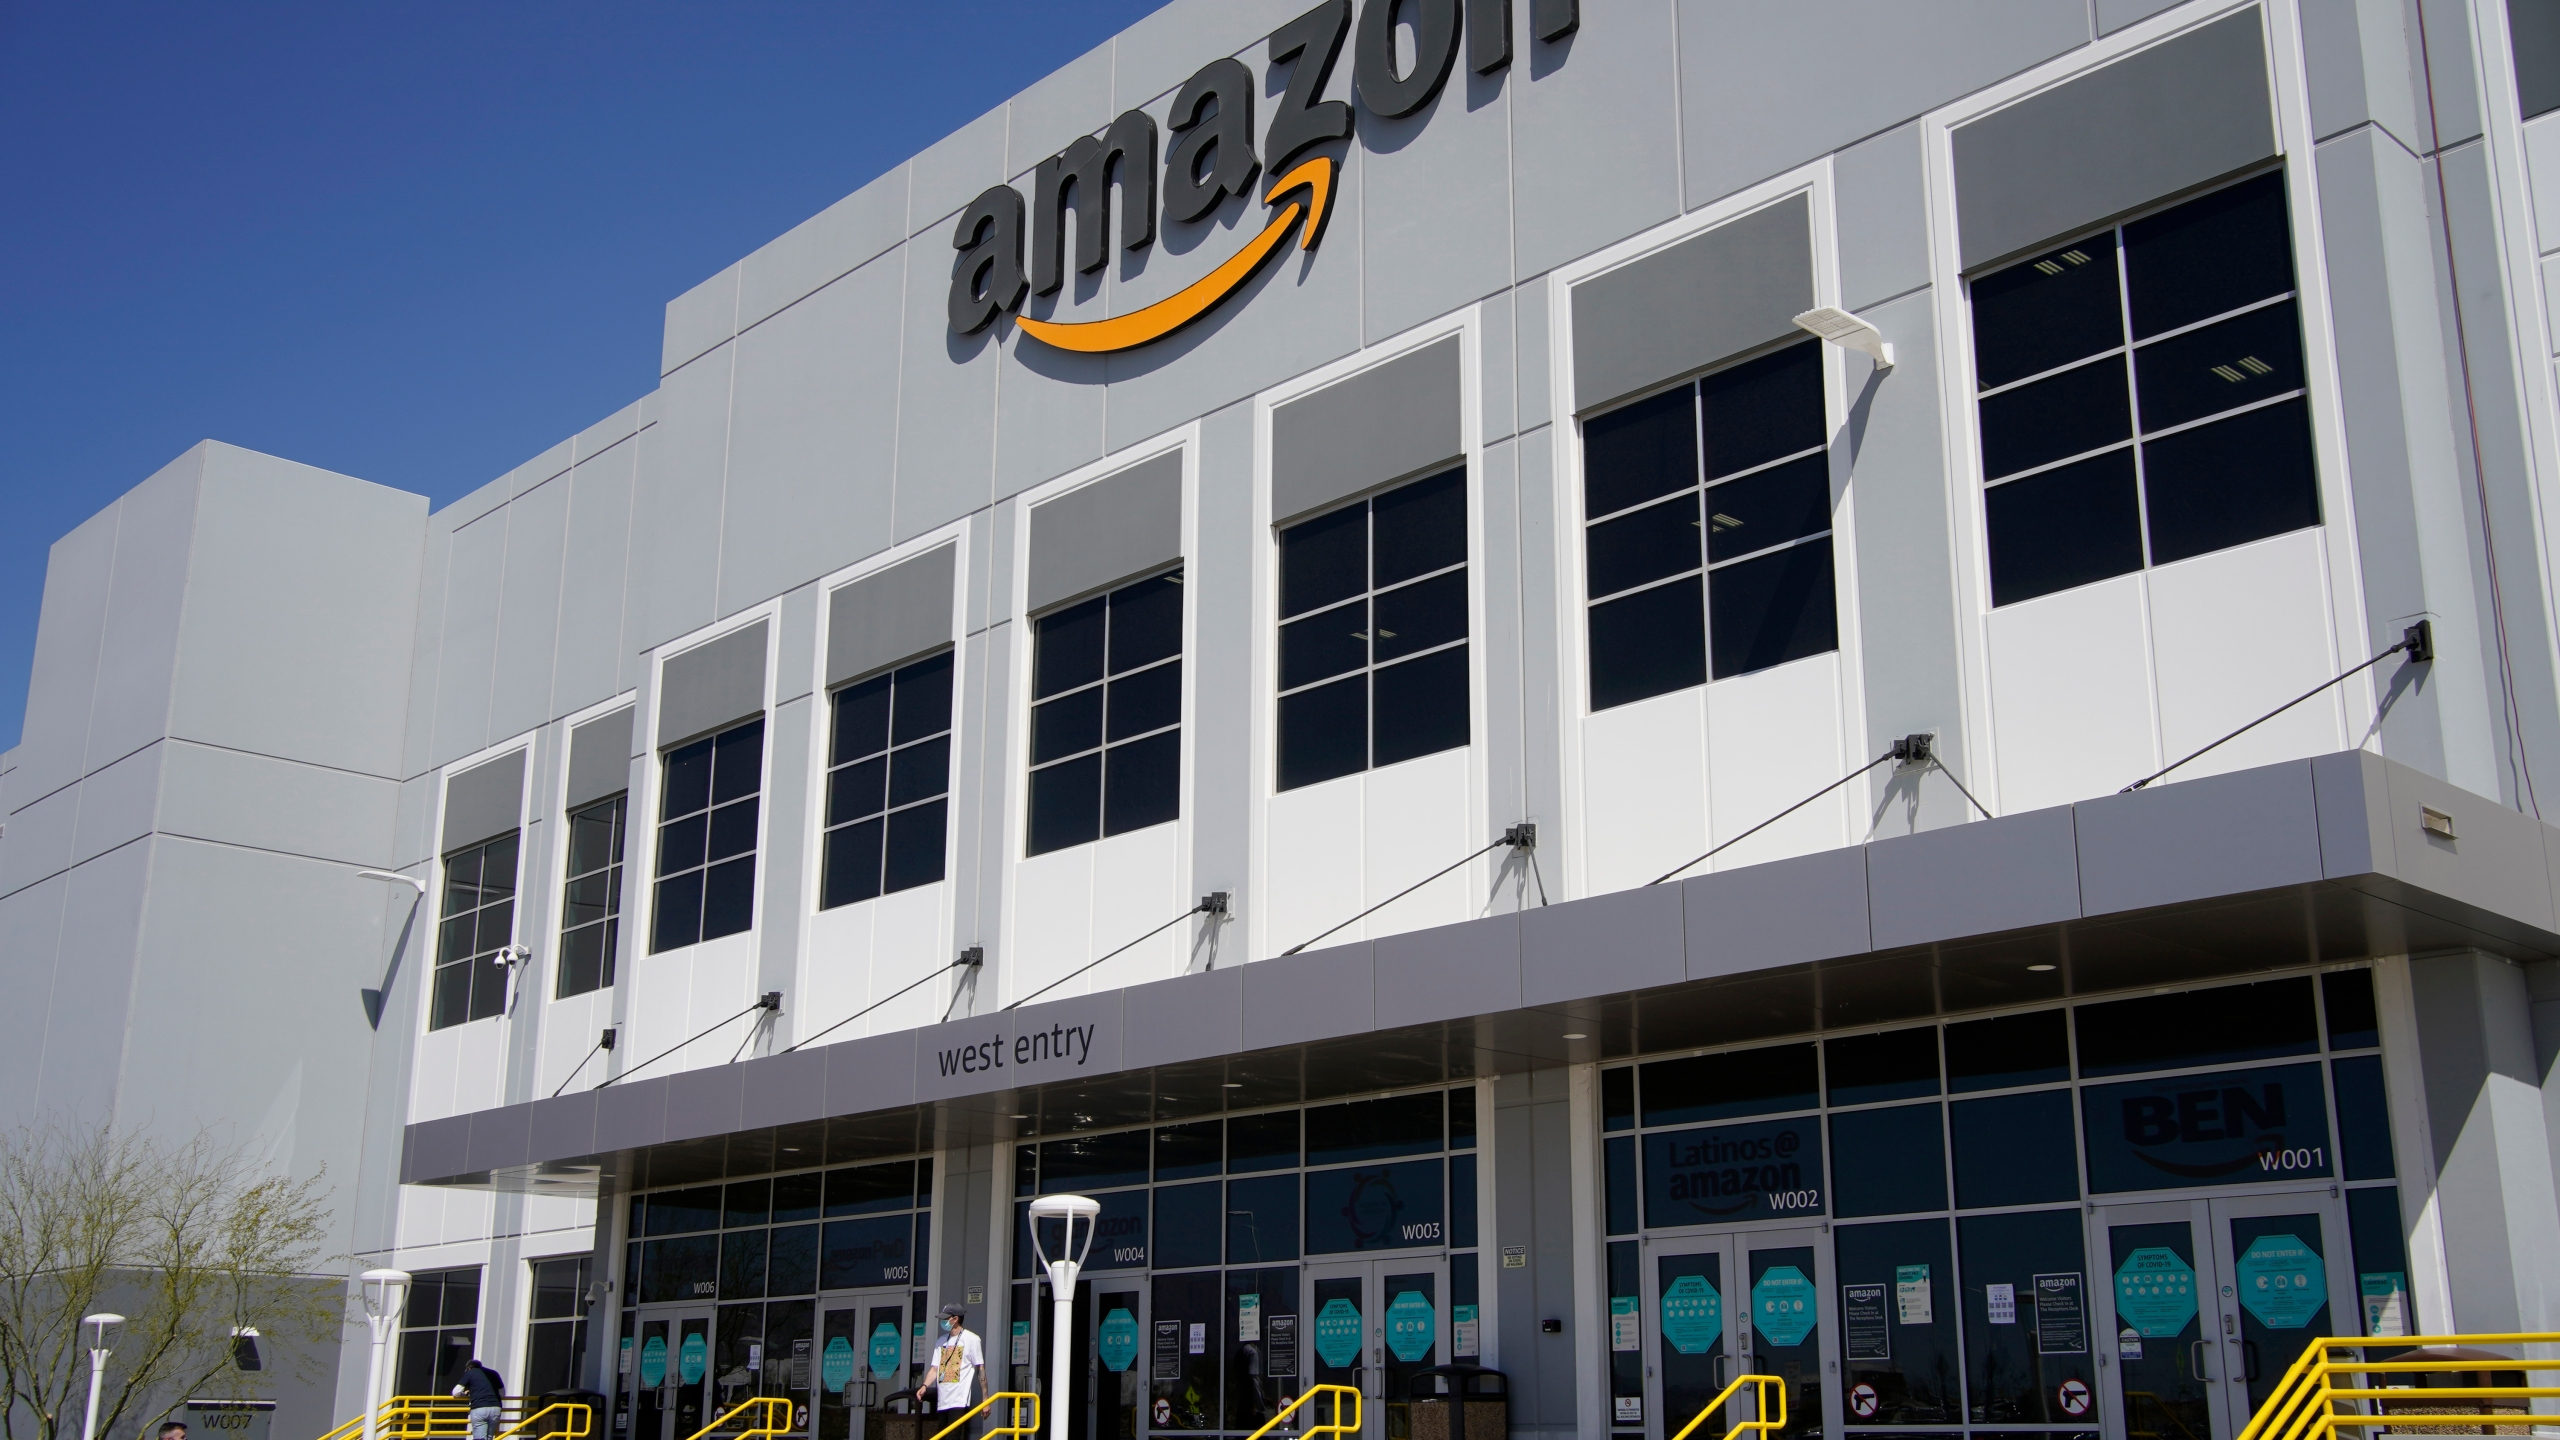 A worker walks out of an Amazon Fulfillment Center, Wednesday, March 31, 2021, in North Las Vegas. Amazon said it will stop testing its workers for COVID-19 at its warehouses at the end of July, citing the availability of vaccines and free testing. (AP Photo/John Locher)